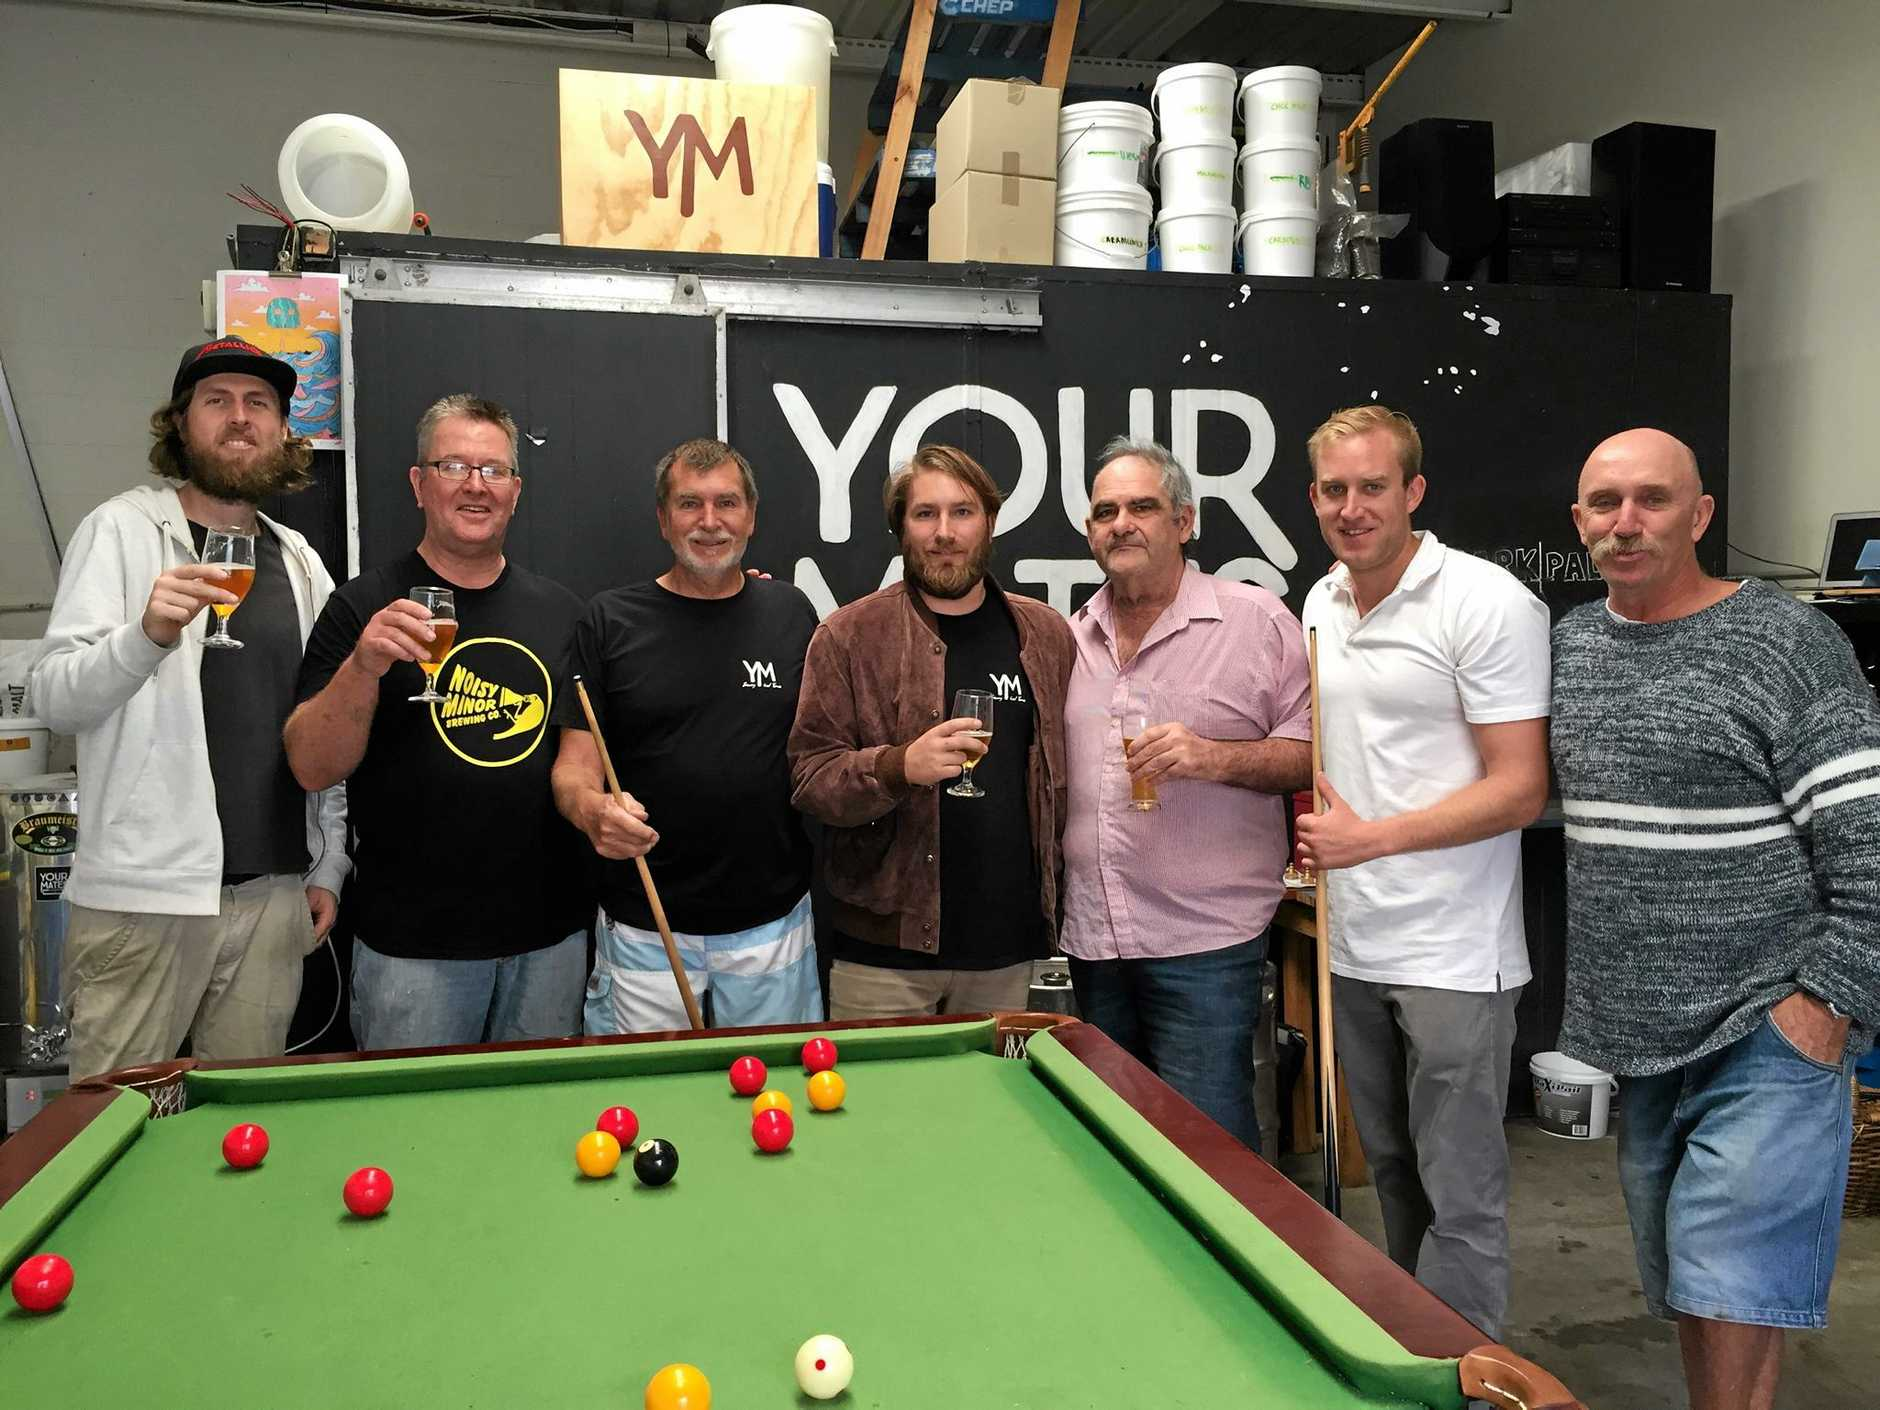 WITH MATES: Nick 'The Pontiff' Gulotta (third from right) with fellow craft beer enthusiasts Your Mates head brewer and co-founder Christen McGarry (far left) Steven Laing, Gary Hepburn, Your Mates co-founder Matt Hepburn, Dean Hepburn and John O'connor (far right).